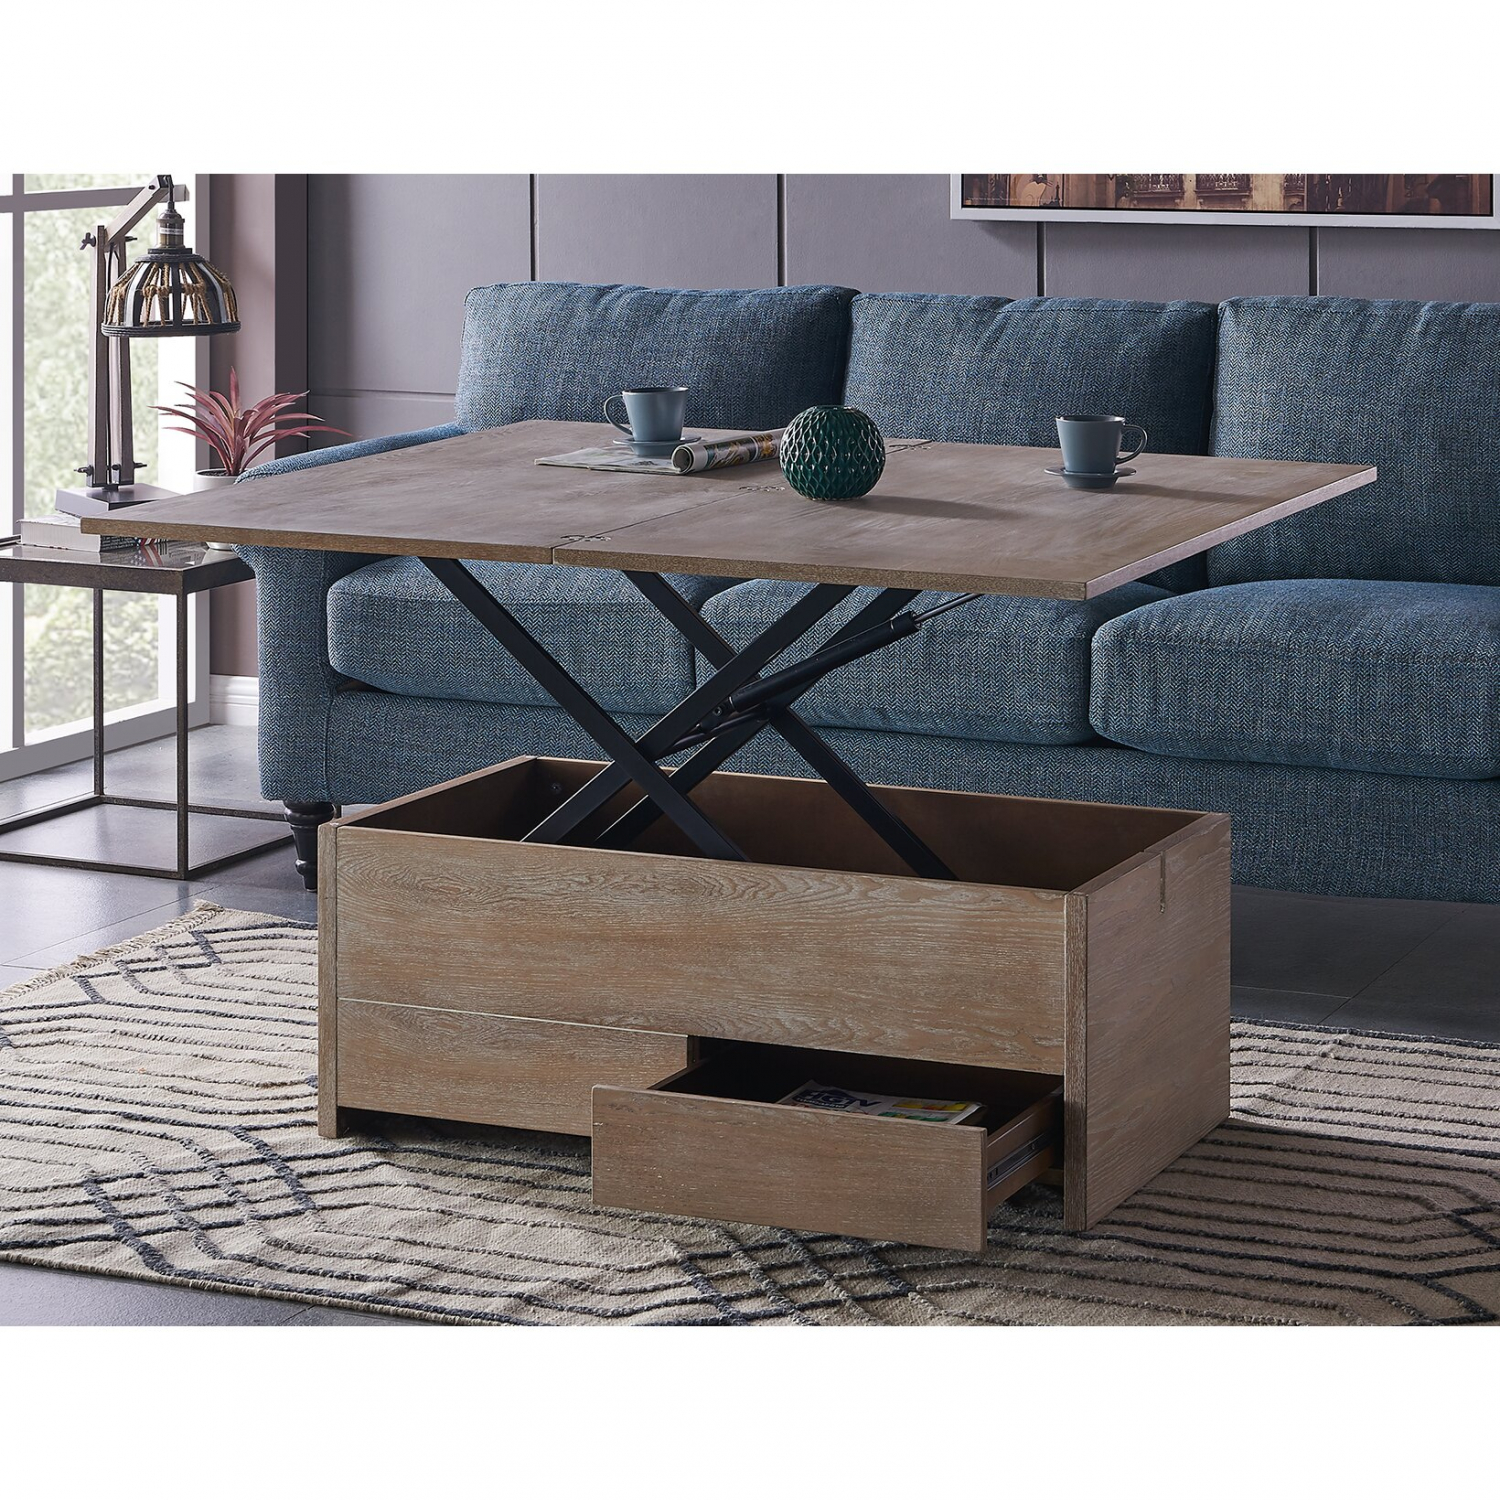 Mcdougal Lift Top Extendable Block Dining Coffee Table Convertible With Storage Ebay